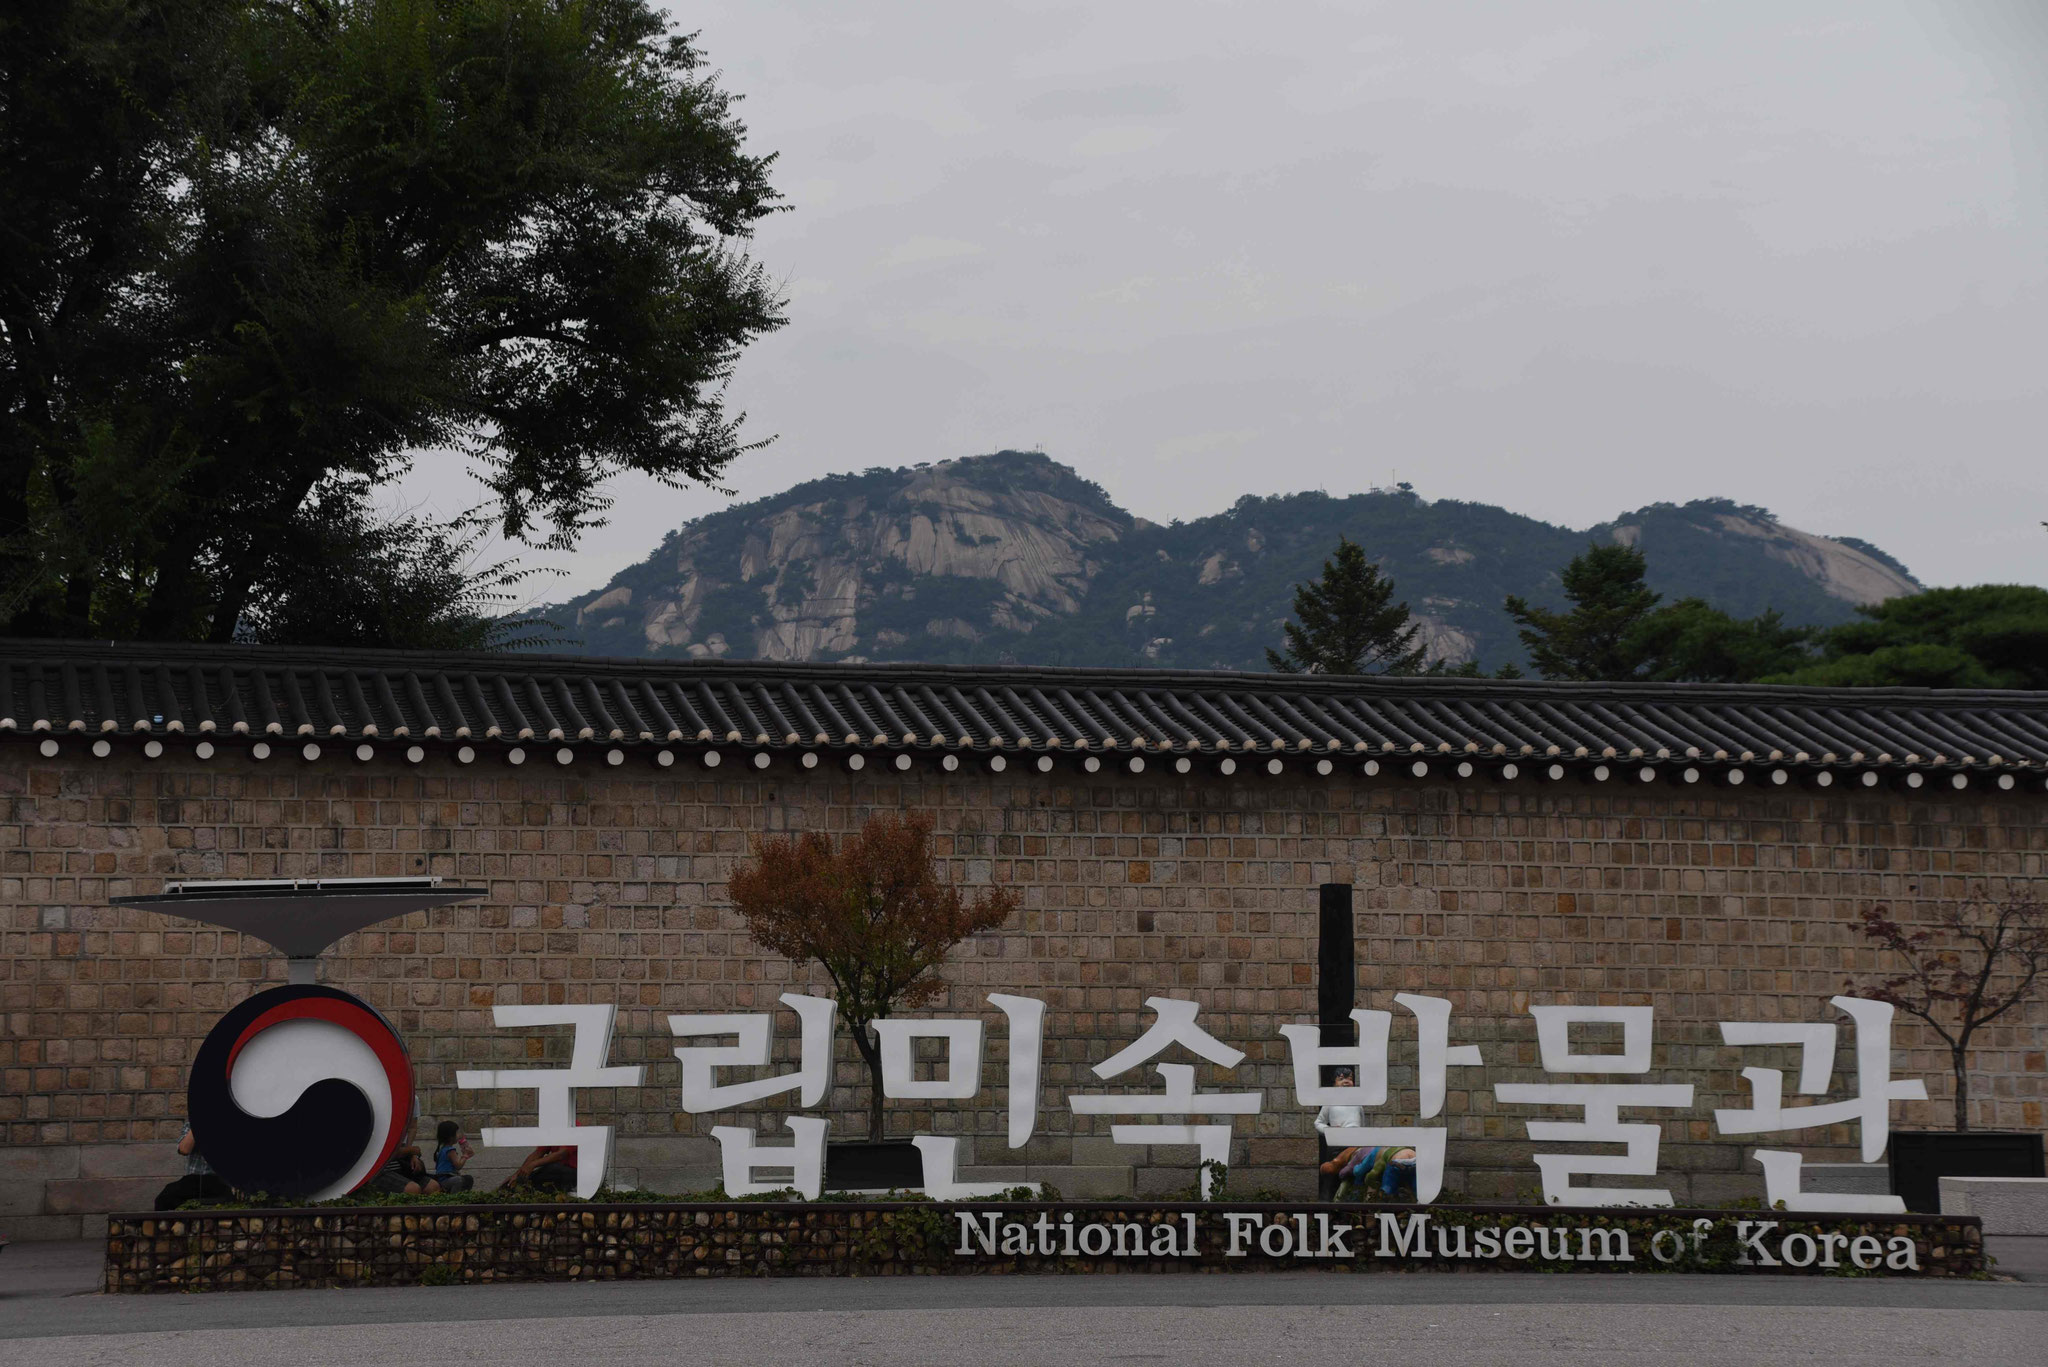 Vor dem National Folk Museum of Korea